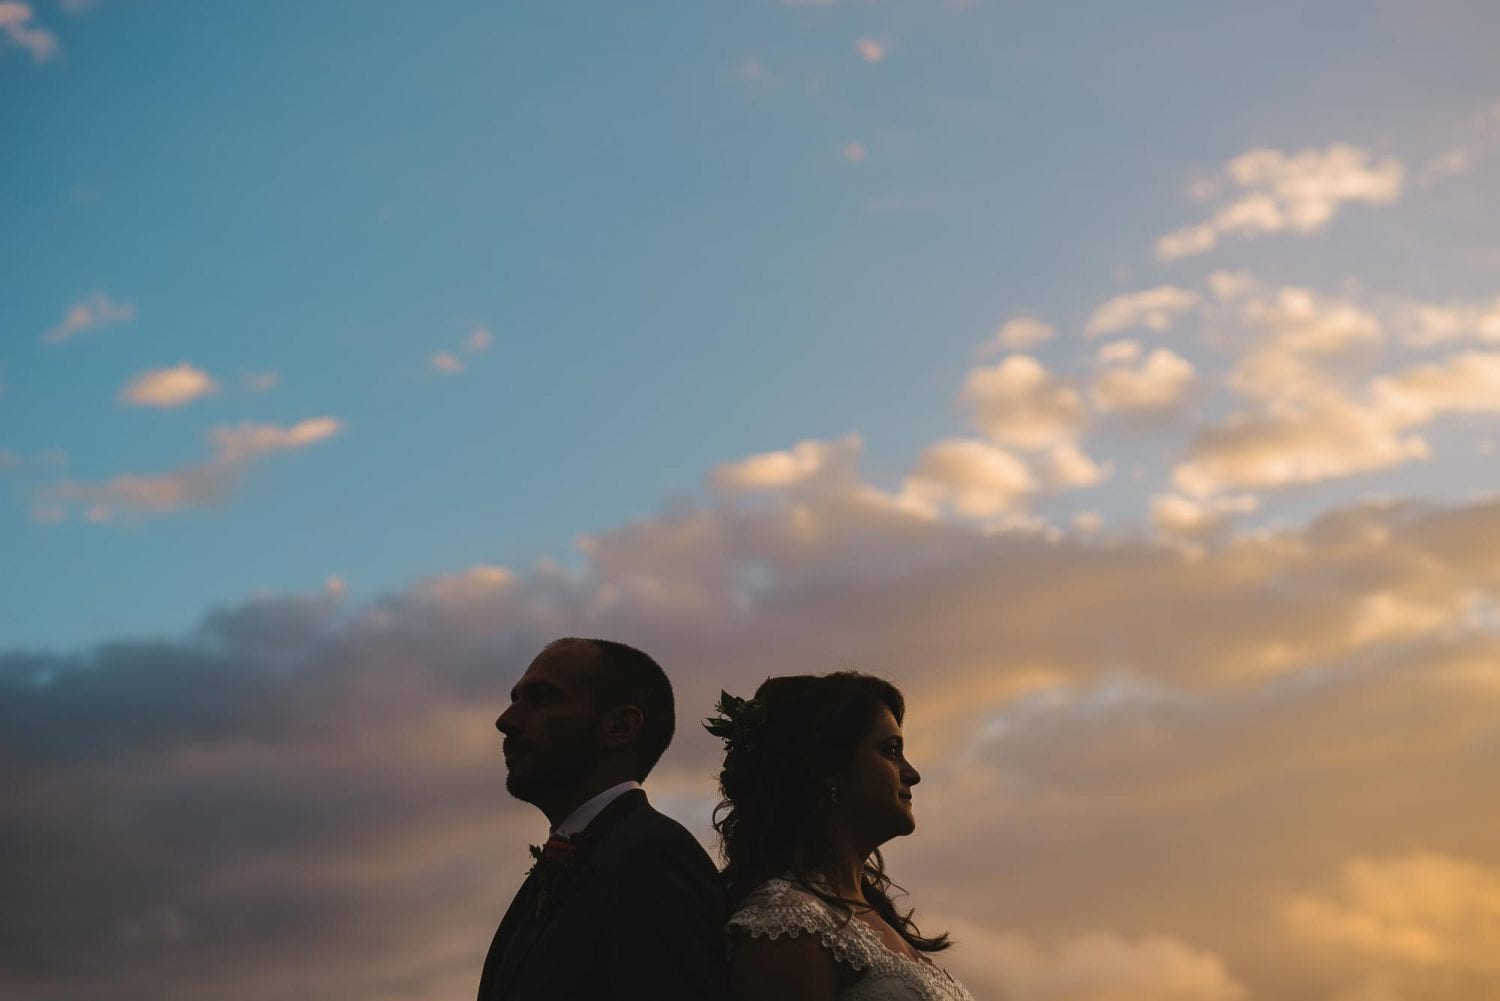 Silhouette weddings